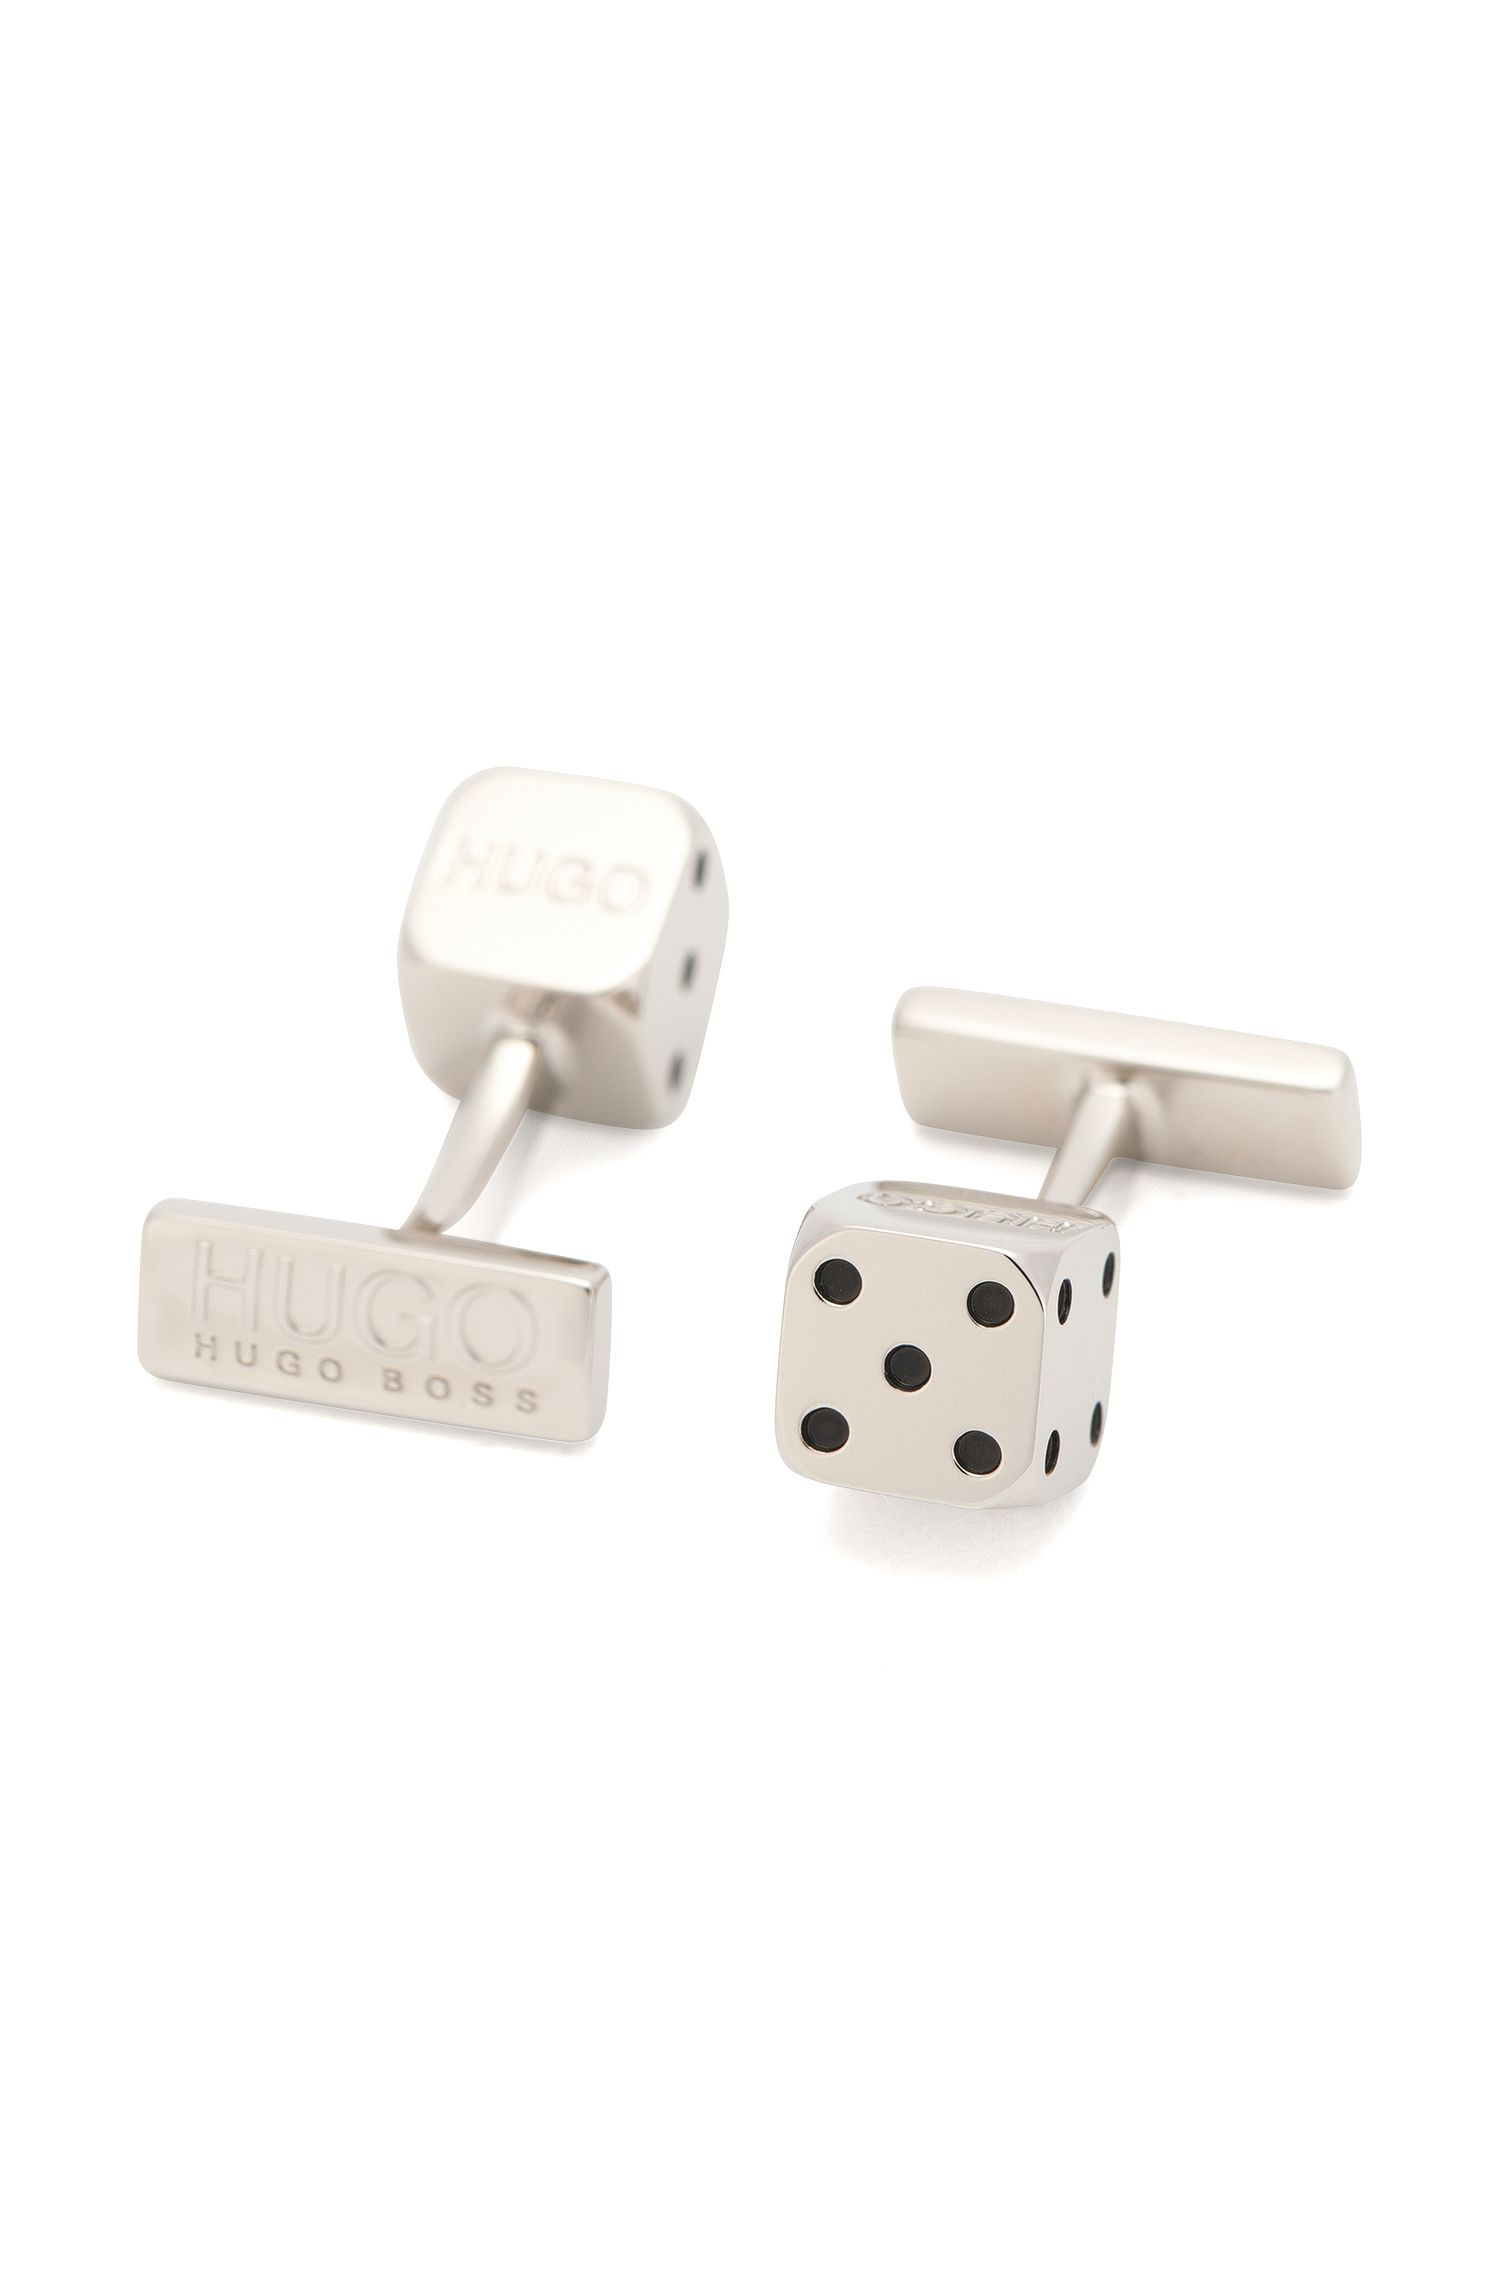 'E-DICE' | Brass Dice Cufflinks